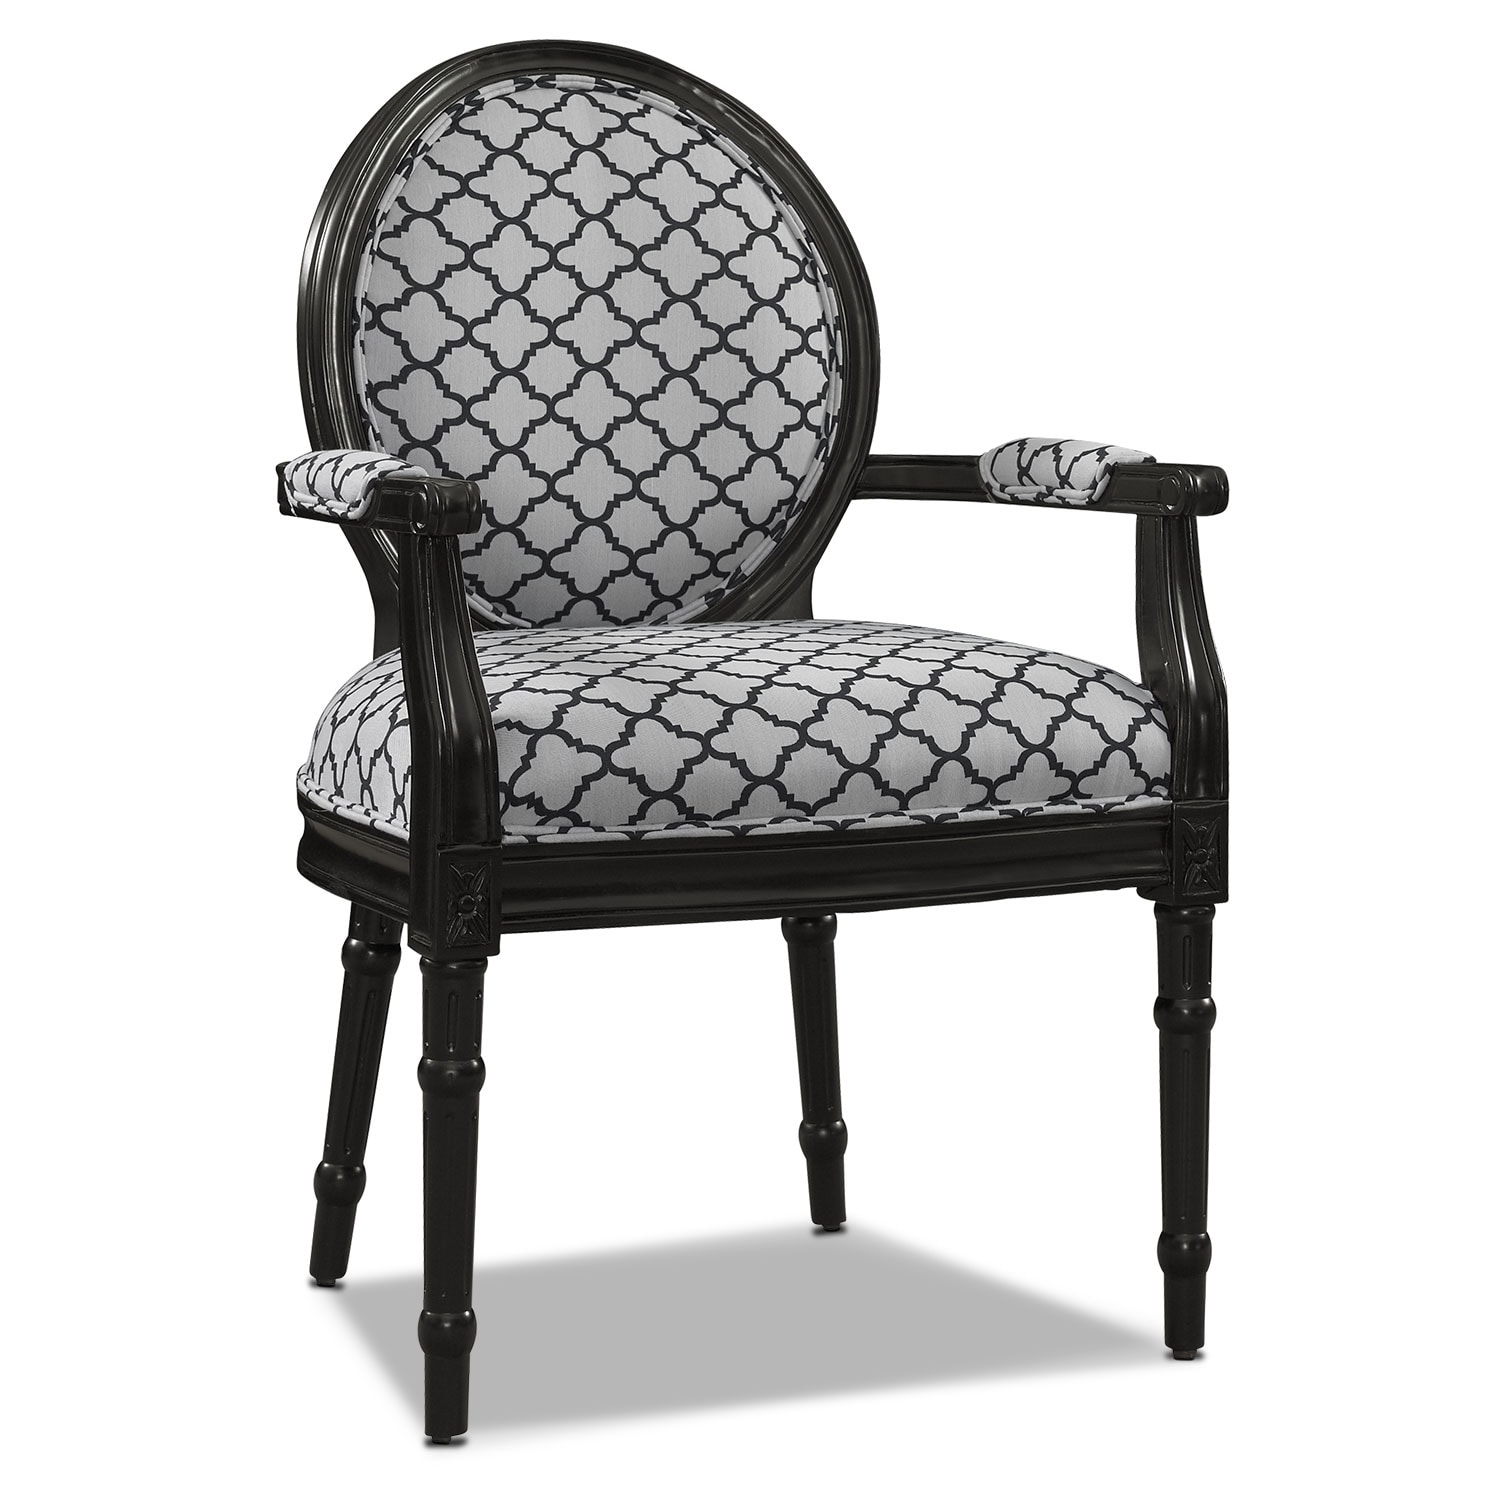 American Accent Furniture Selayang: Myra Accent Chair - Black And White